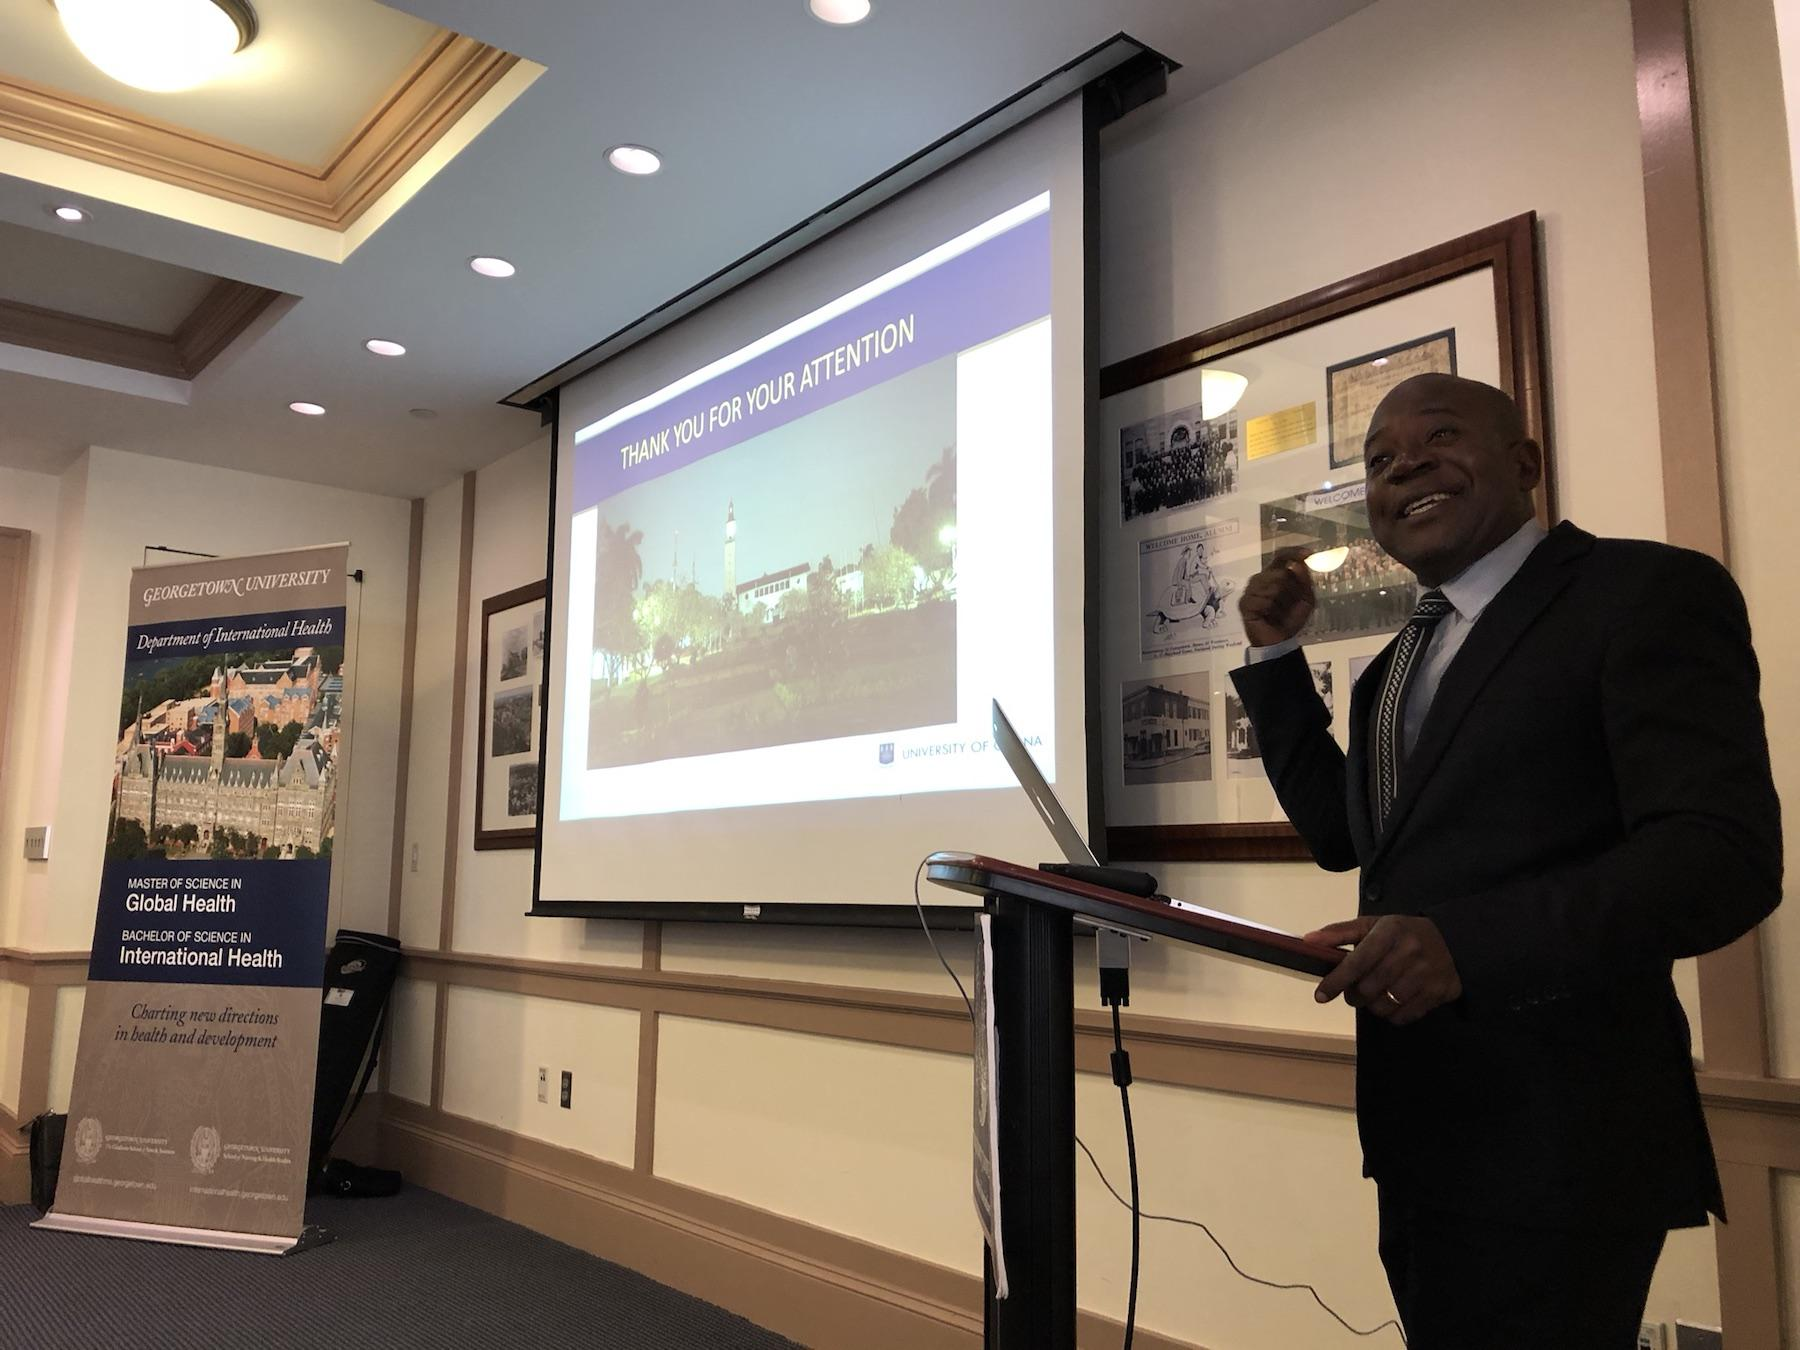 Expert Addresses Ghana & Urban System Demographic Trends To GU Students